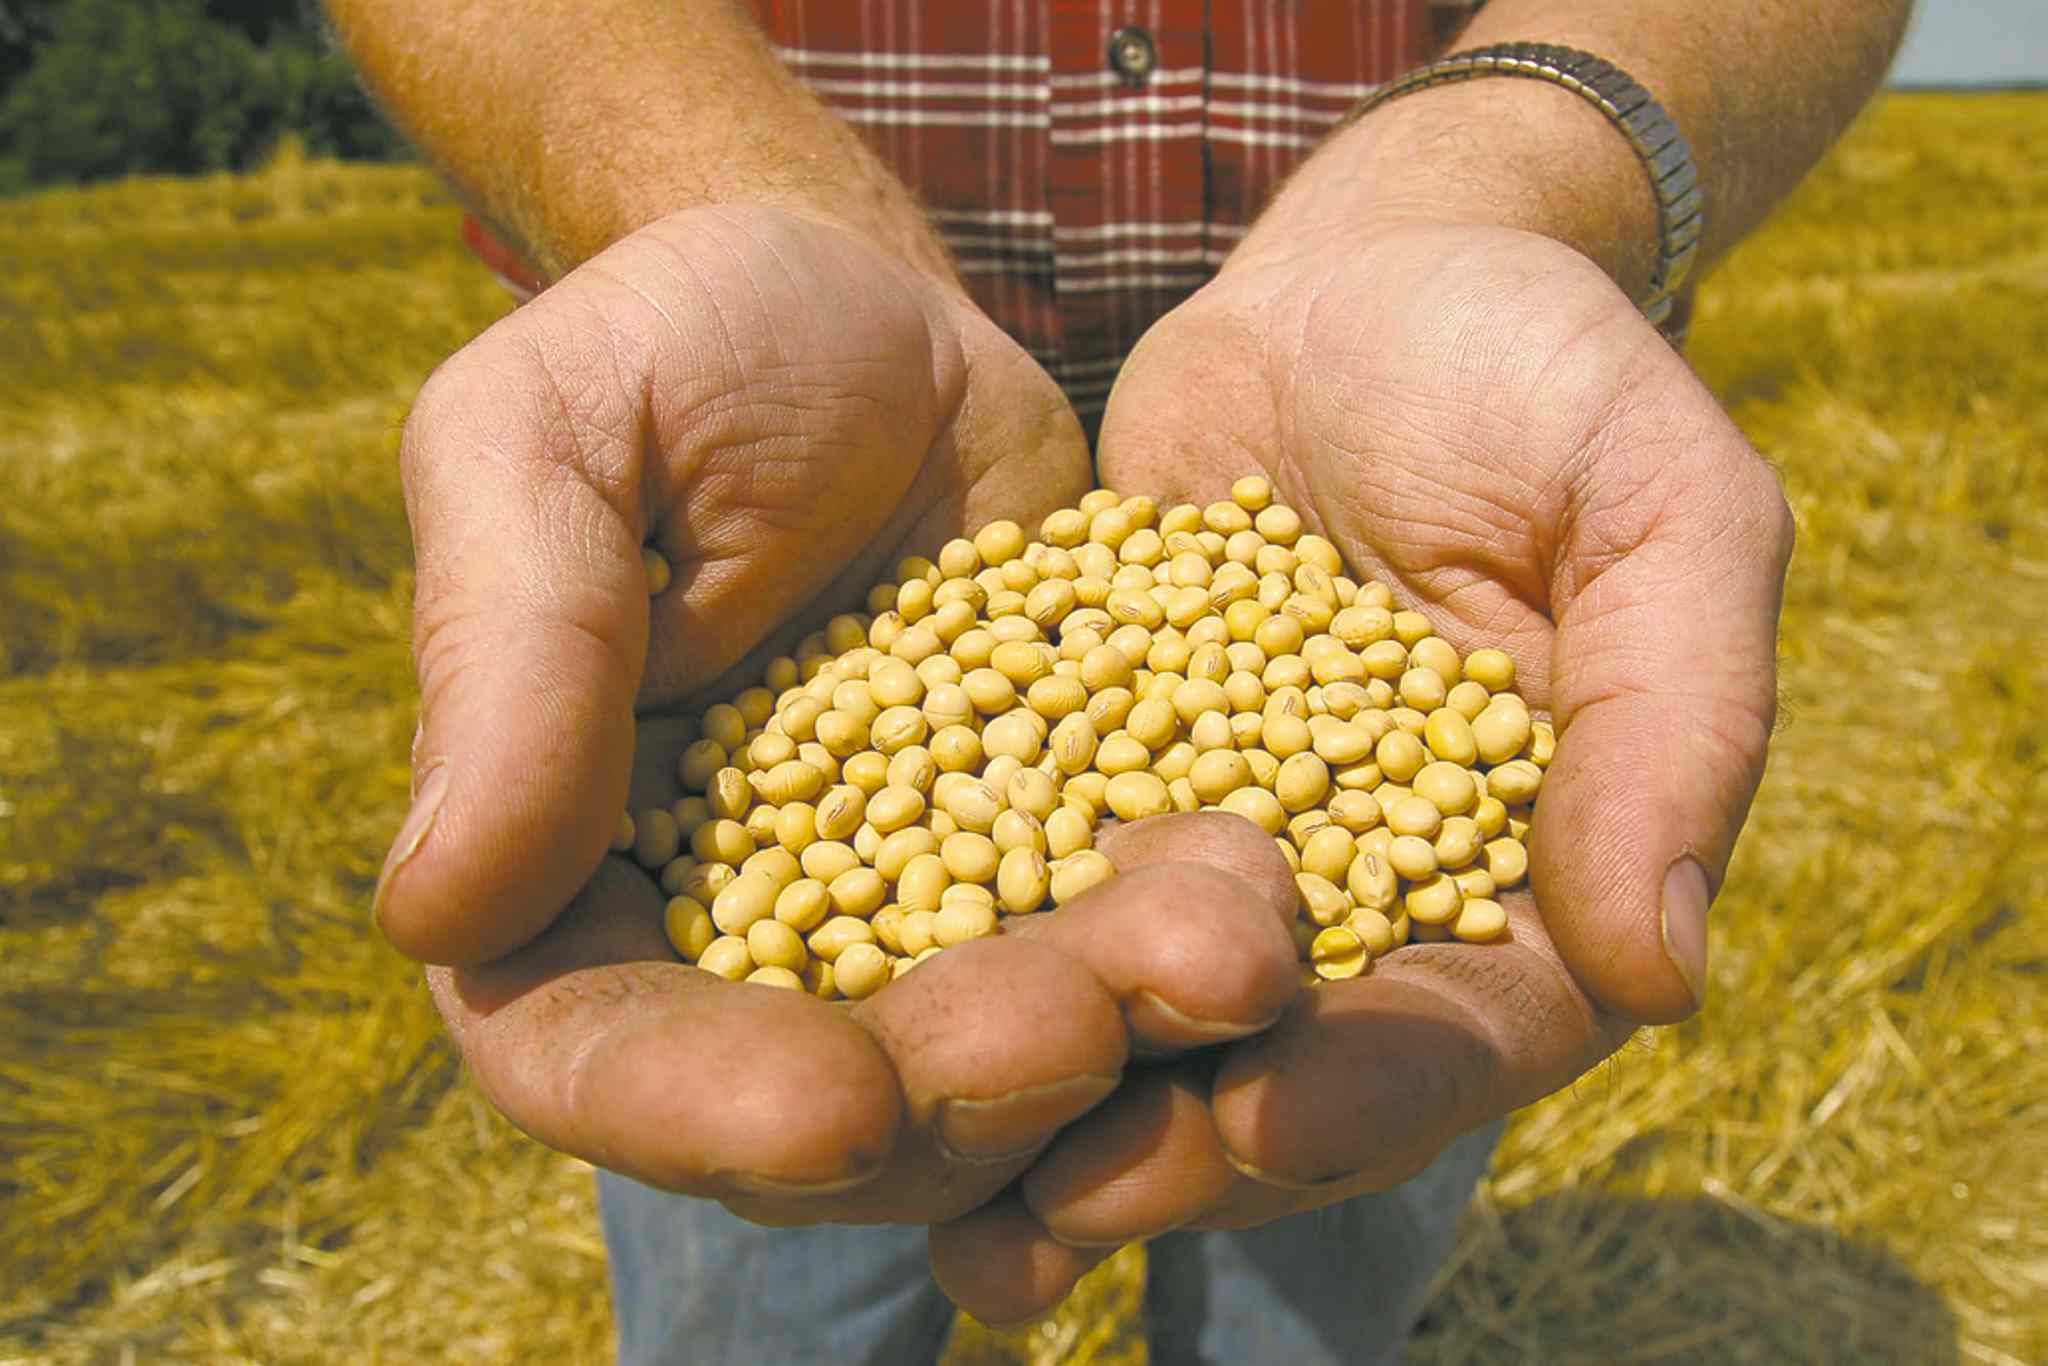 Dan Gill / The Associated Press Archives